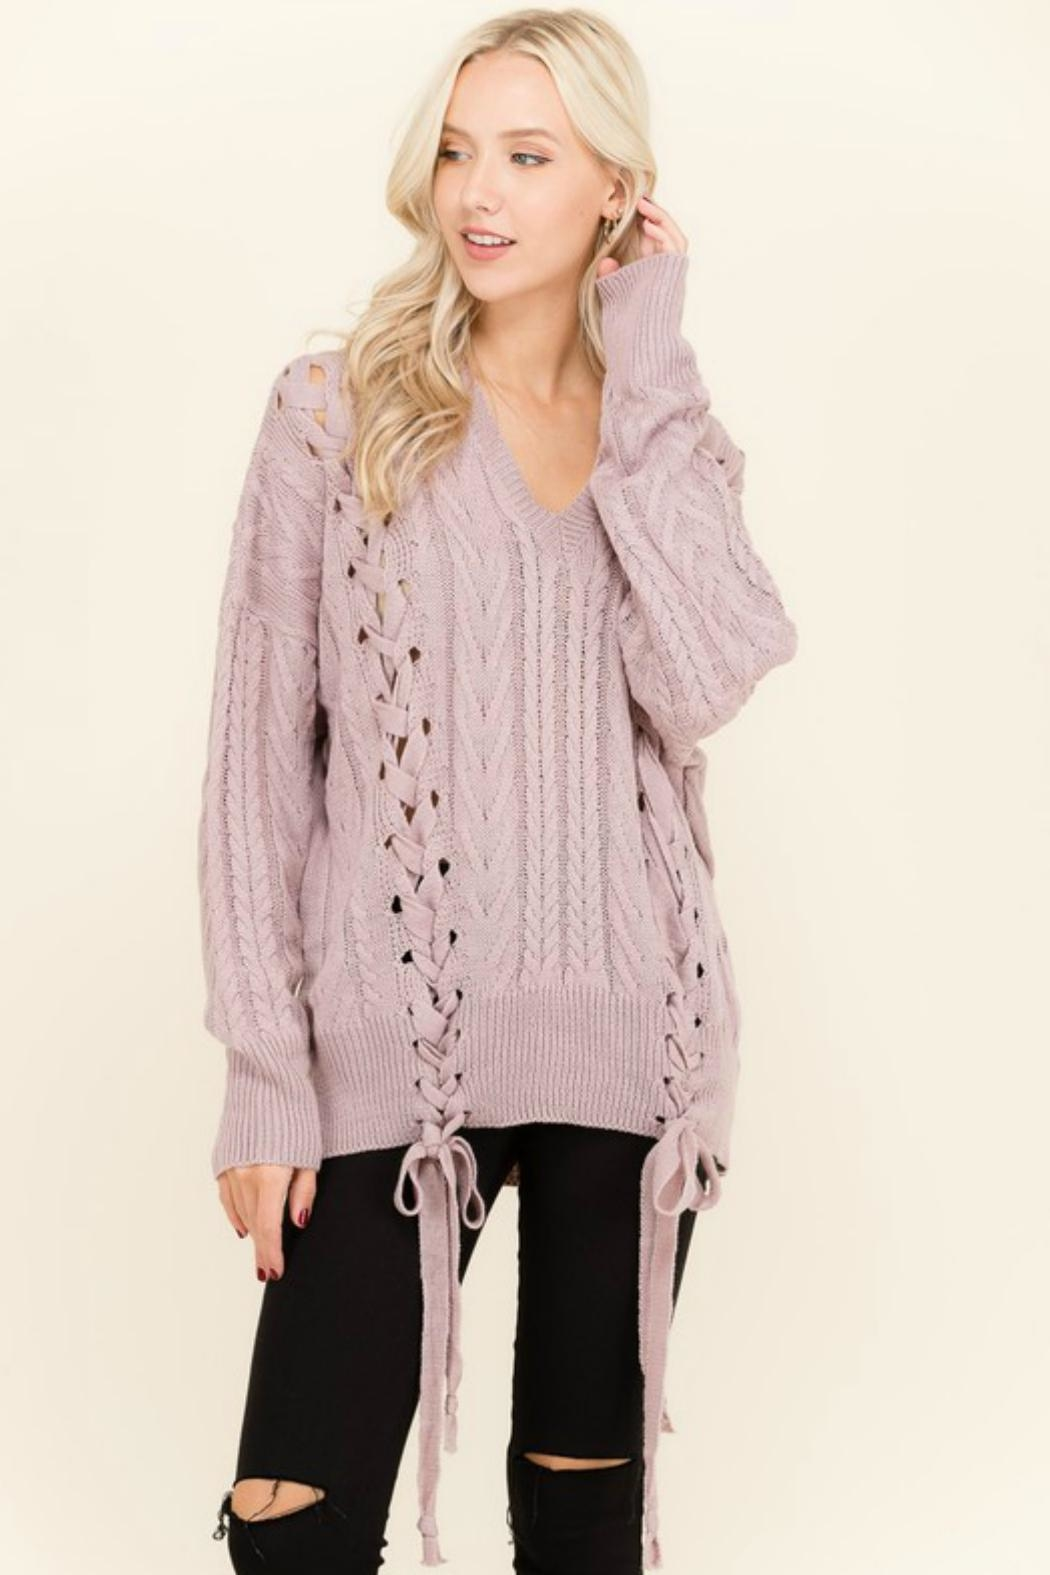 Petalroz Lace-Up Cable Sweater - Main Image